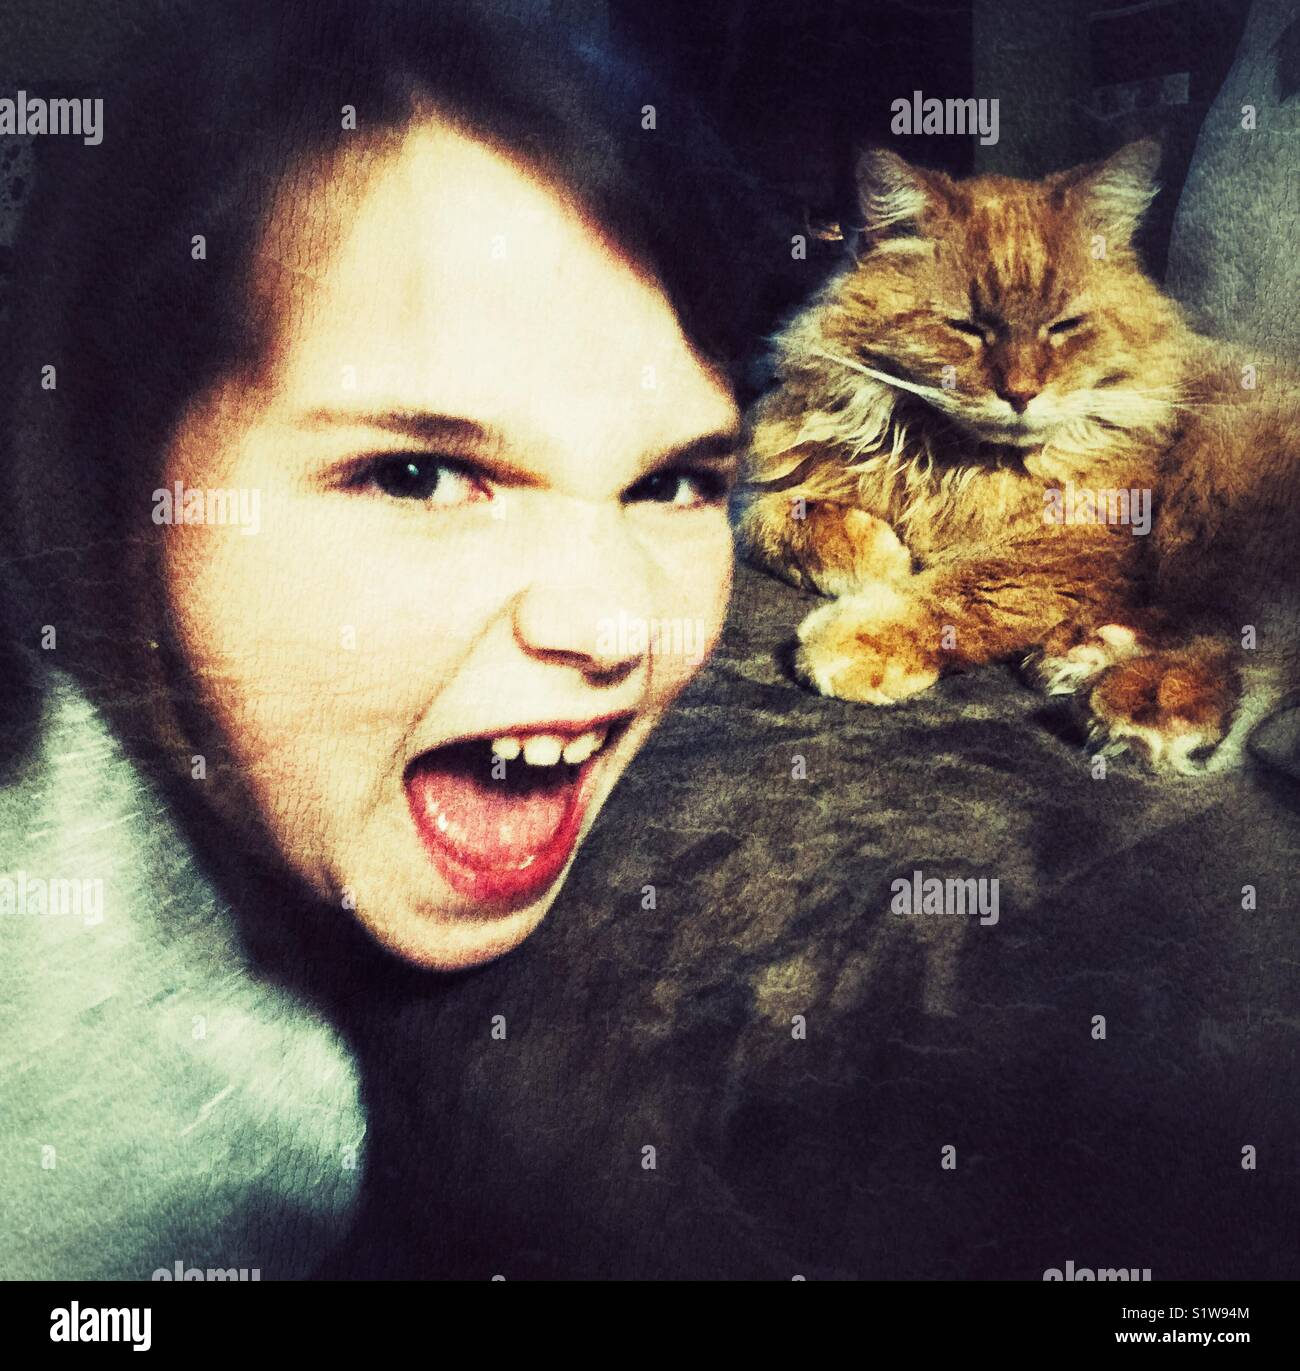 Angry girl yelling with relaxed orange cat in background - Stock Image